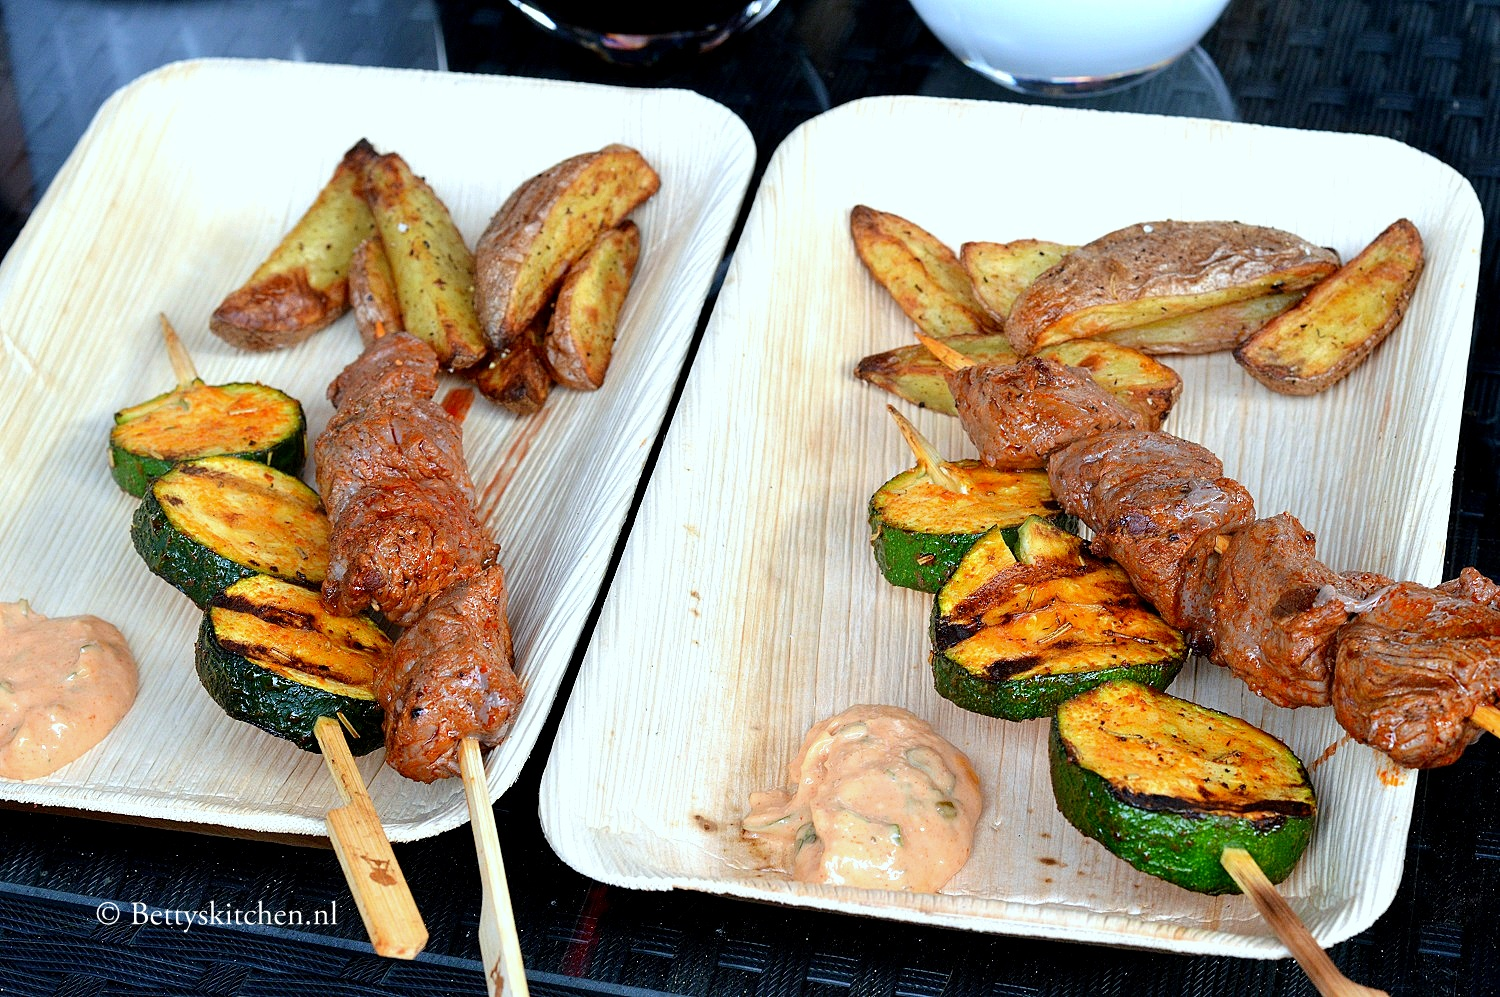 Weber Barbecue Recepten Rosbief Spiesen Met Paprika Aioli Betty S Kitchen Foodblog